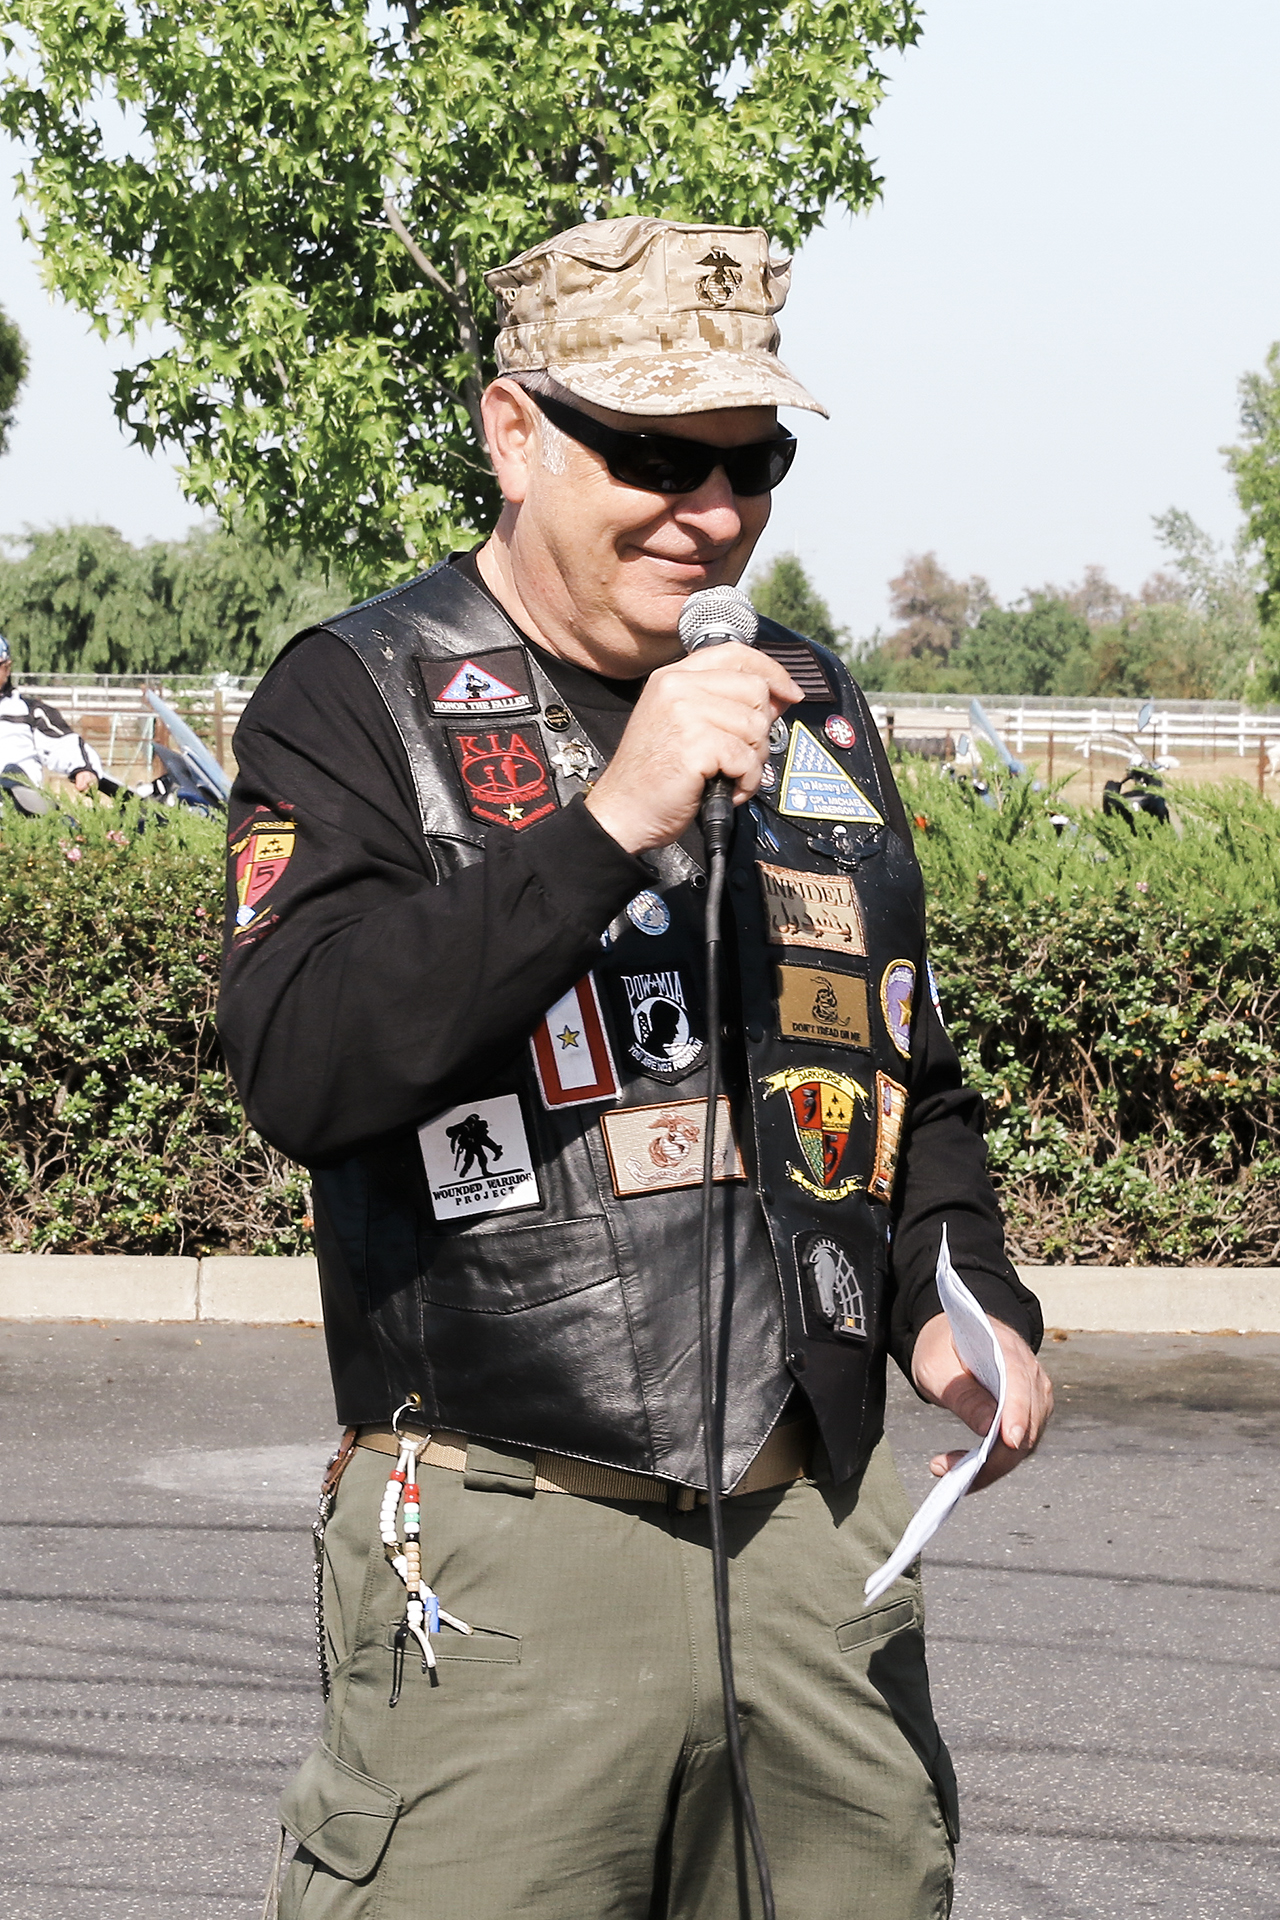 Ride organizer Mike Anderson started the True American Heroes ride to commemorate his son Corporal Mike Anderson JR.